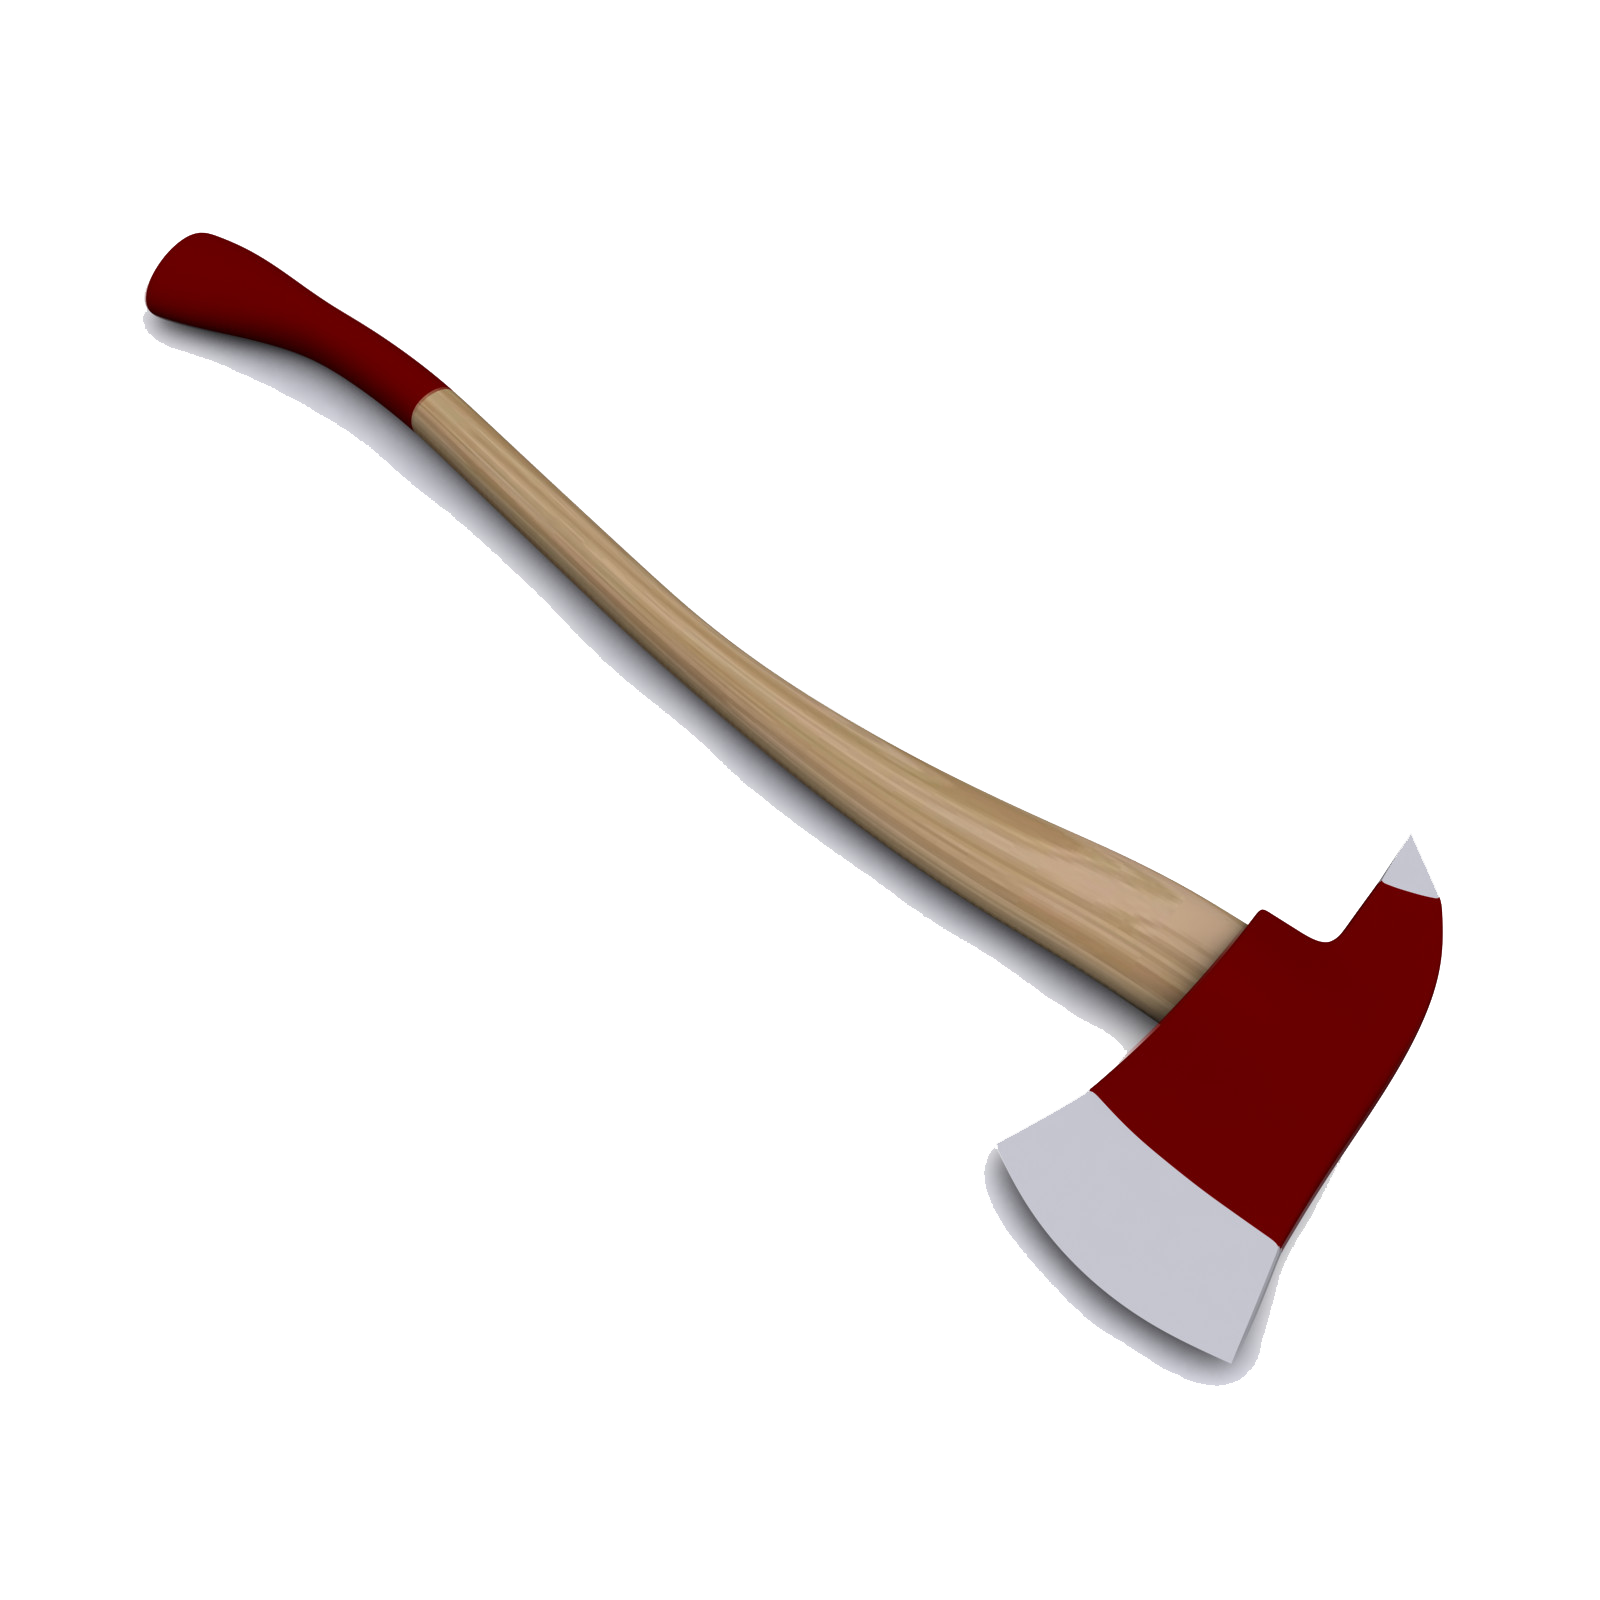 Axe PNG - 6231